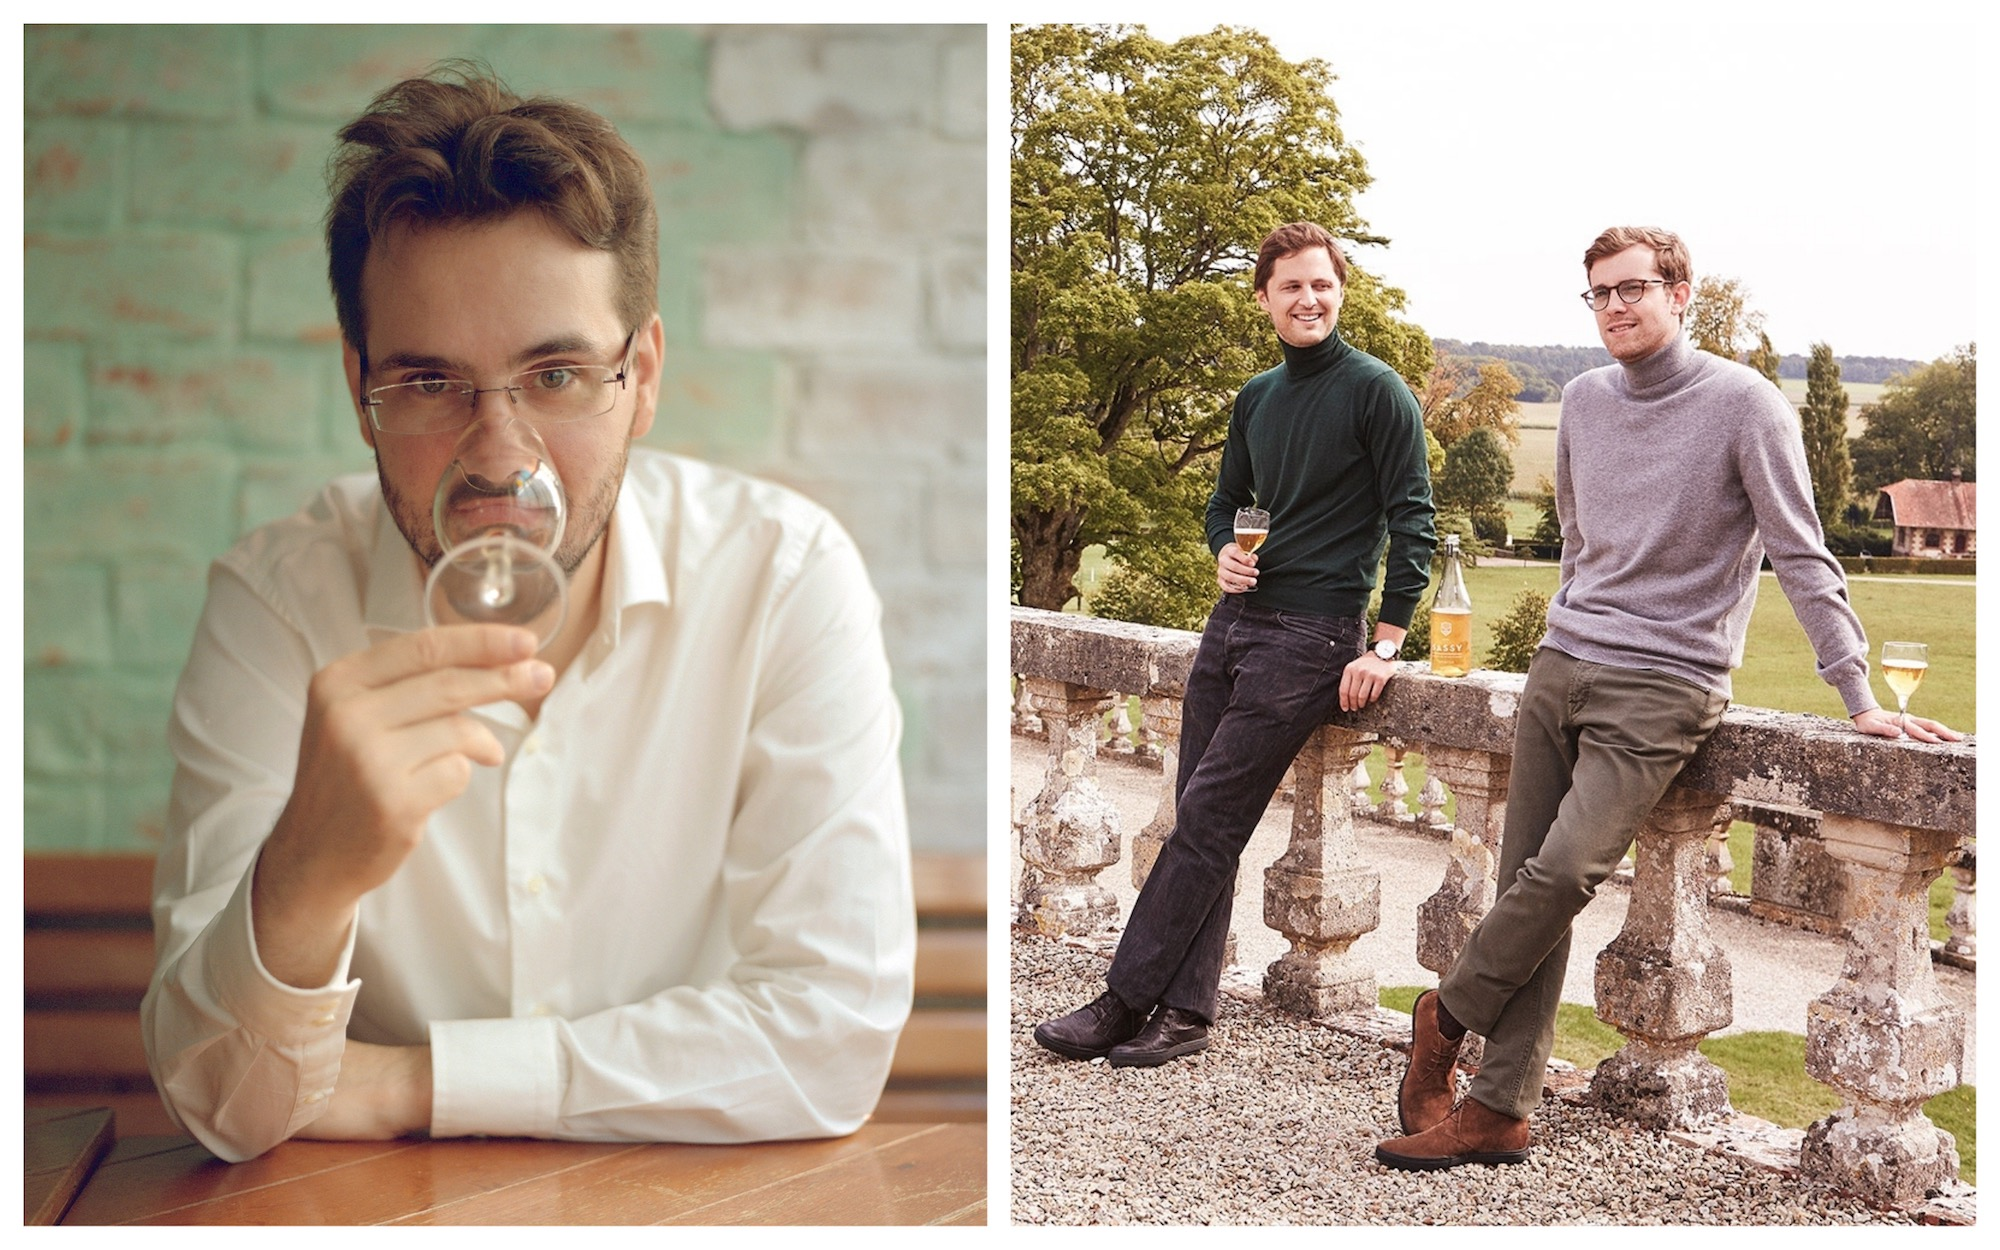 One of the best podcasts in Paris about cocktails is Paris Cocktail Talk by Forest Collins, pictured on the left holding a glass to his mouth, and on the right on a wine estate in France.